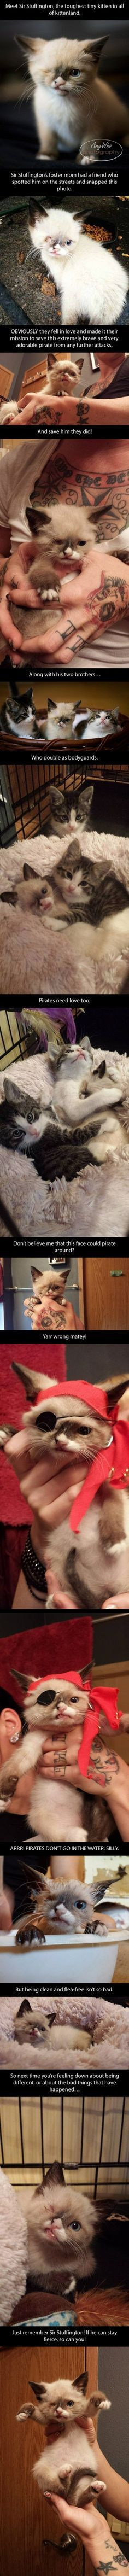 Sir Stuffington // funny pictures - funny photos - funny images - funny pics - funny quotes - #lol #humor #funnypictures